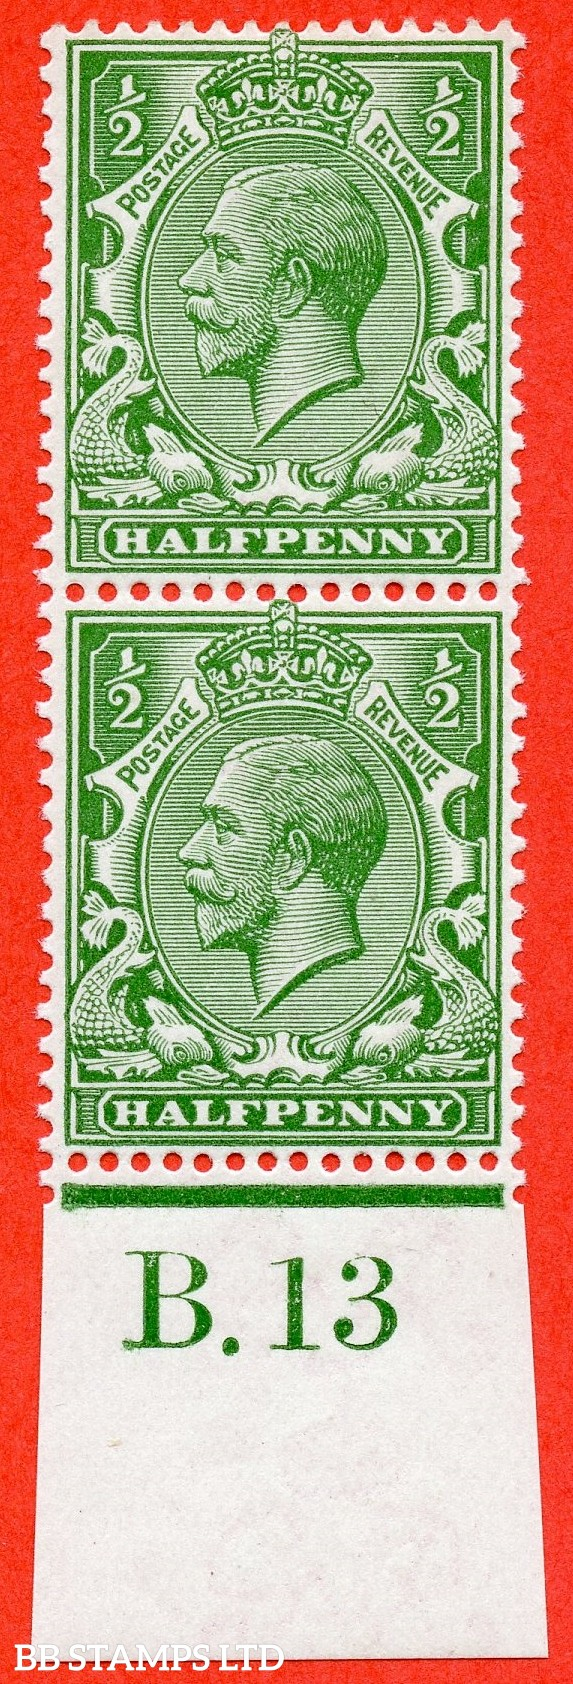 """SG. 352. N14 (6) ea. ½d bright green. """" DOUBLE WATERMARK """". A very fine UNMOUNTED MINT bottom marginal control """" B.13 imperf """" vertical pair. Complete with RPS certificate."""